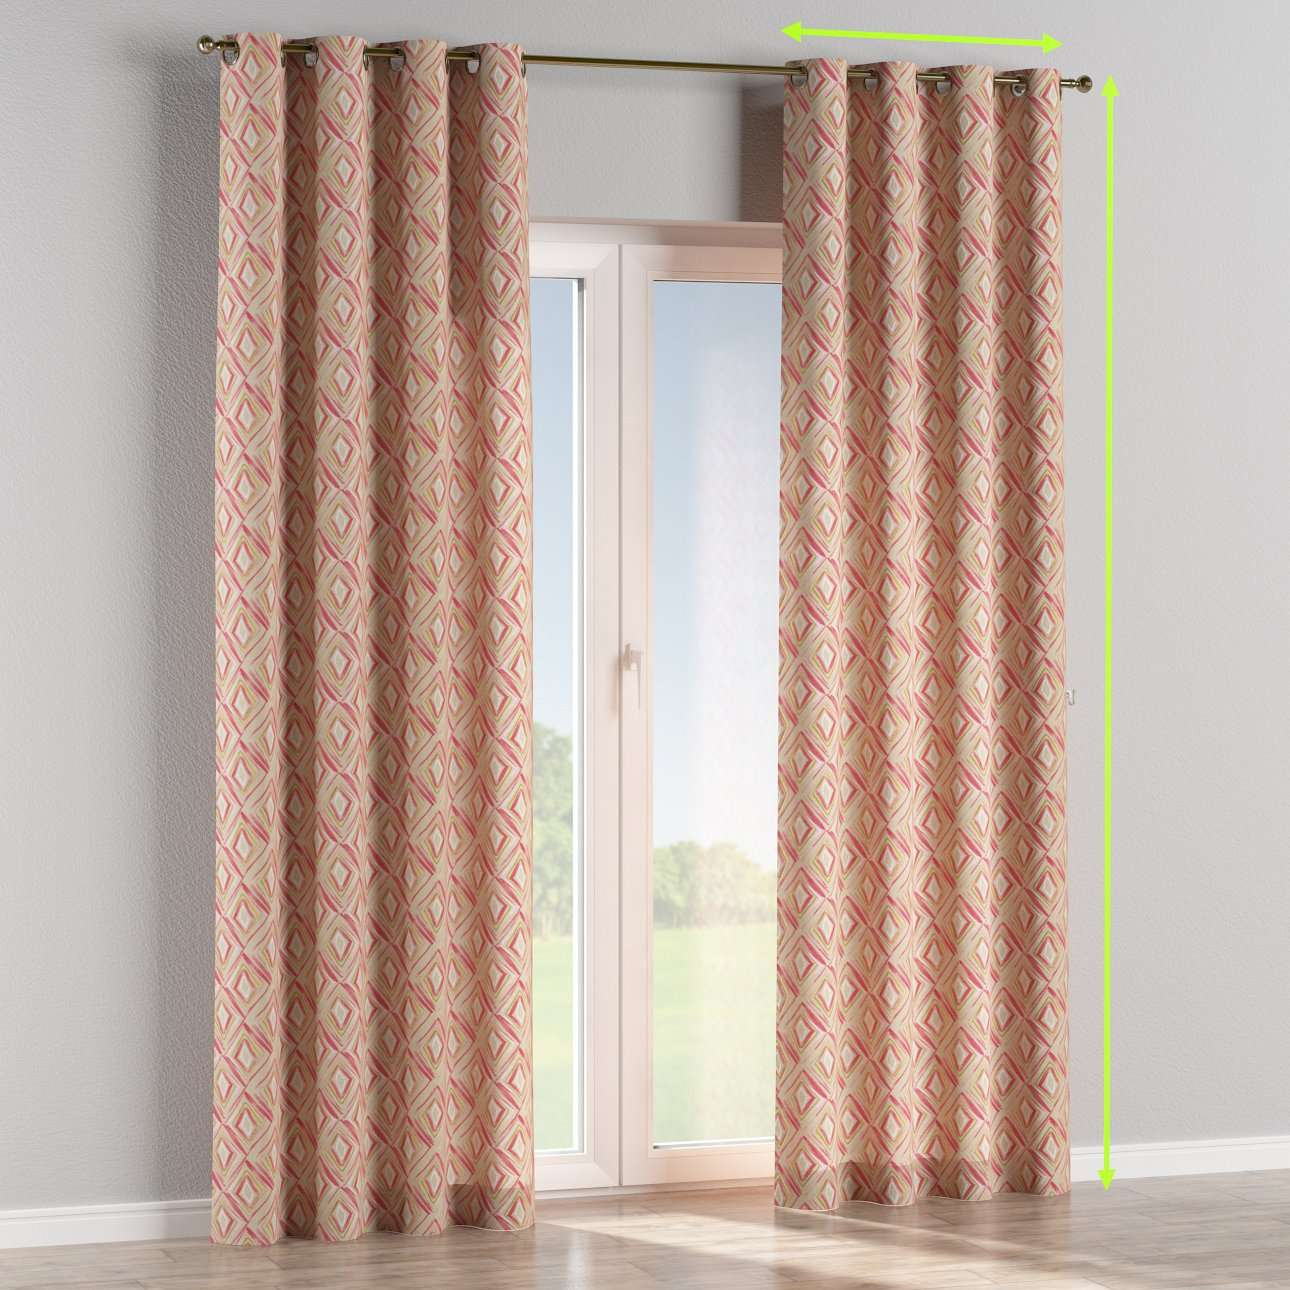 Eyelet lined curtains in collection Londres, fabric: 140-45